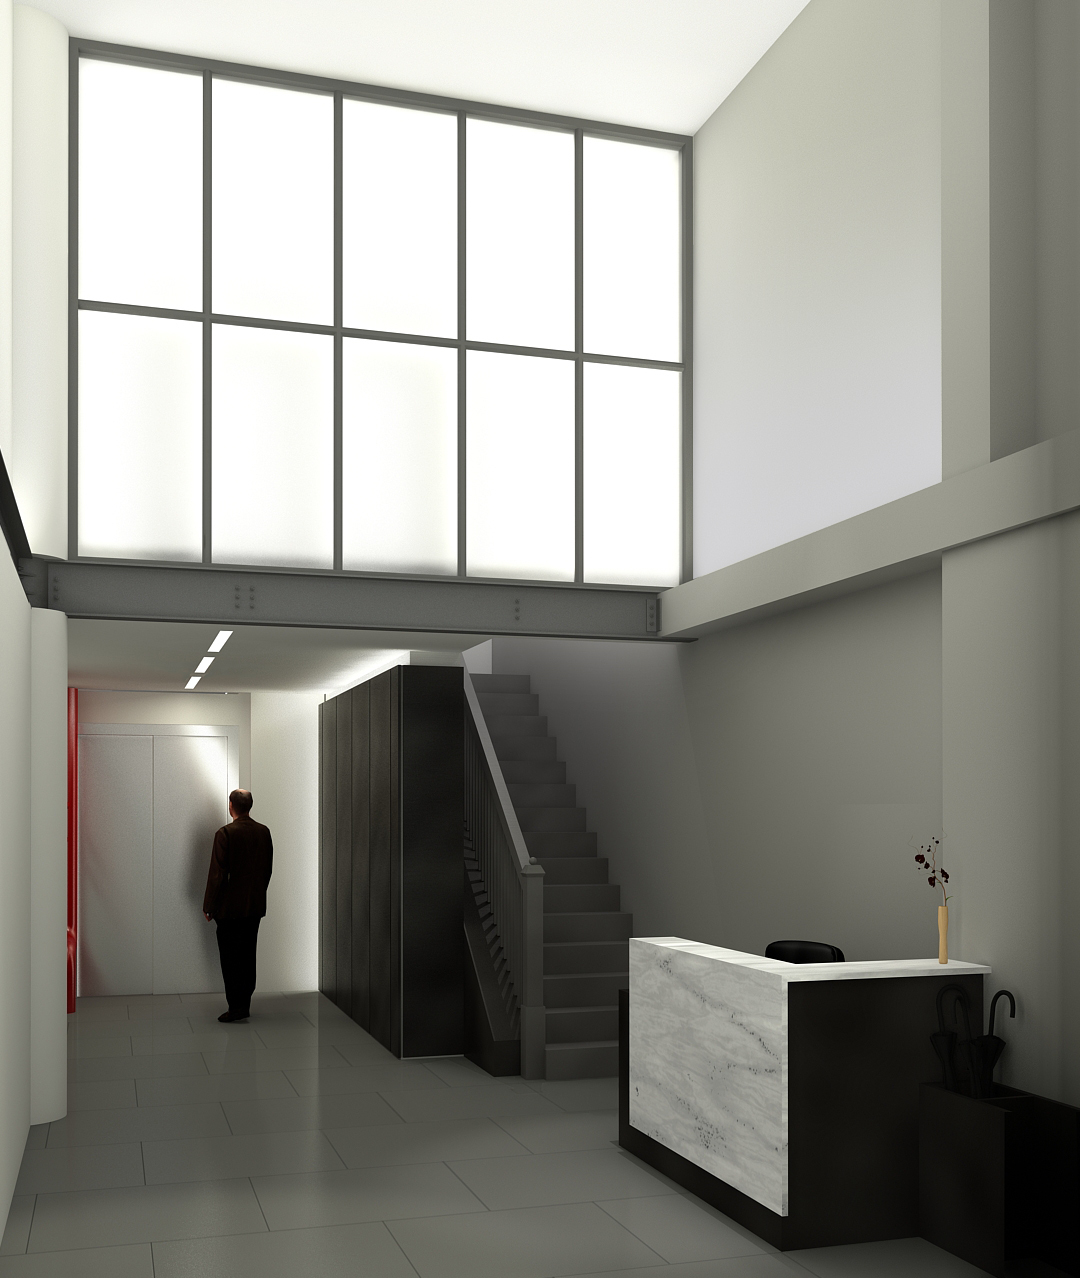 Final front lobby rendering view: A